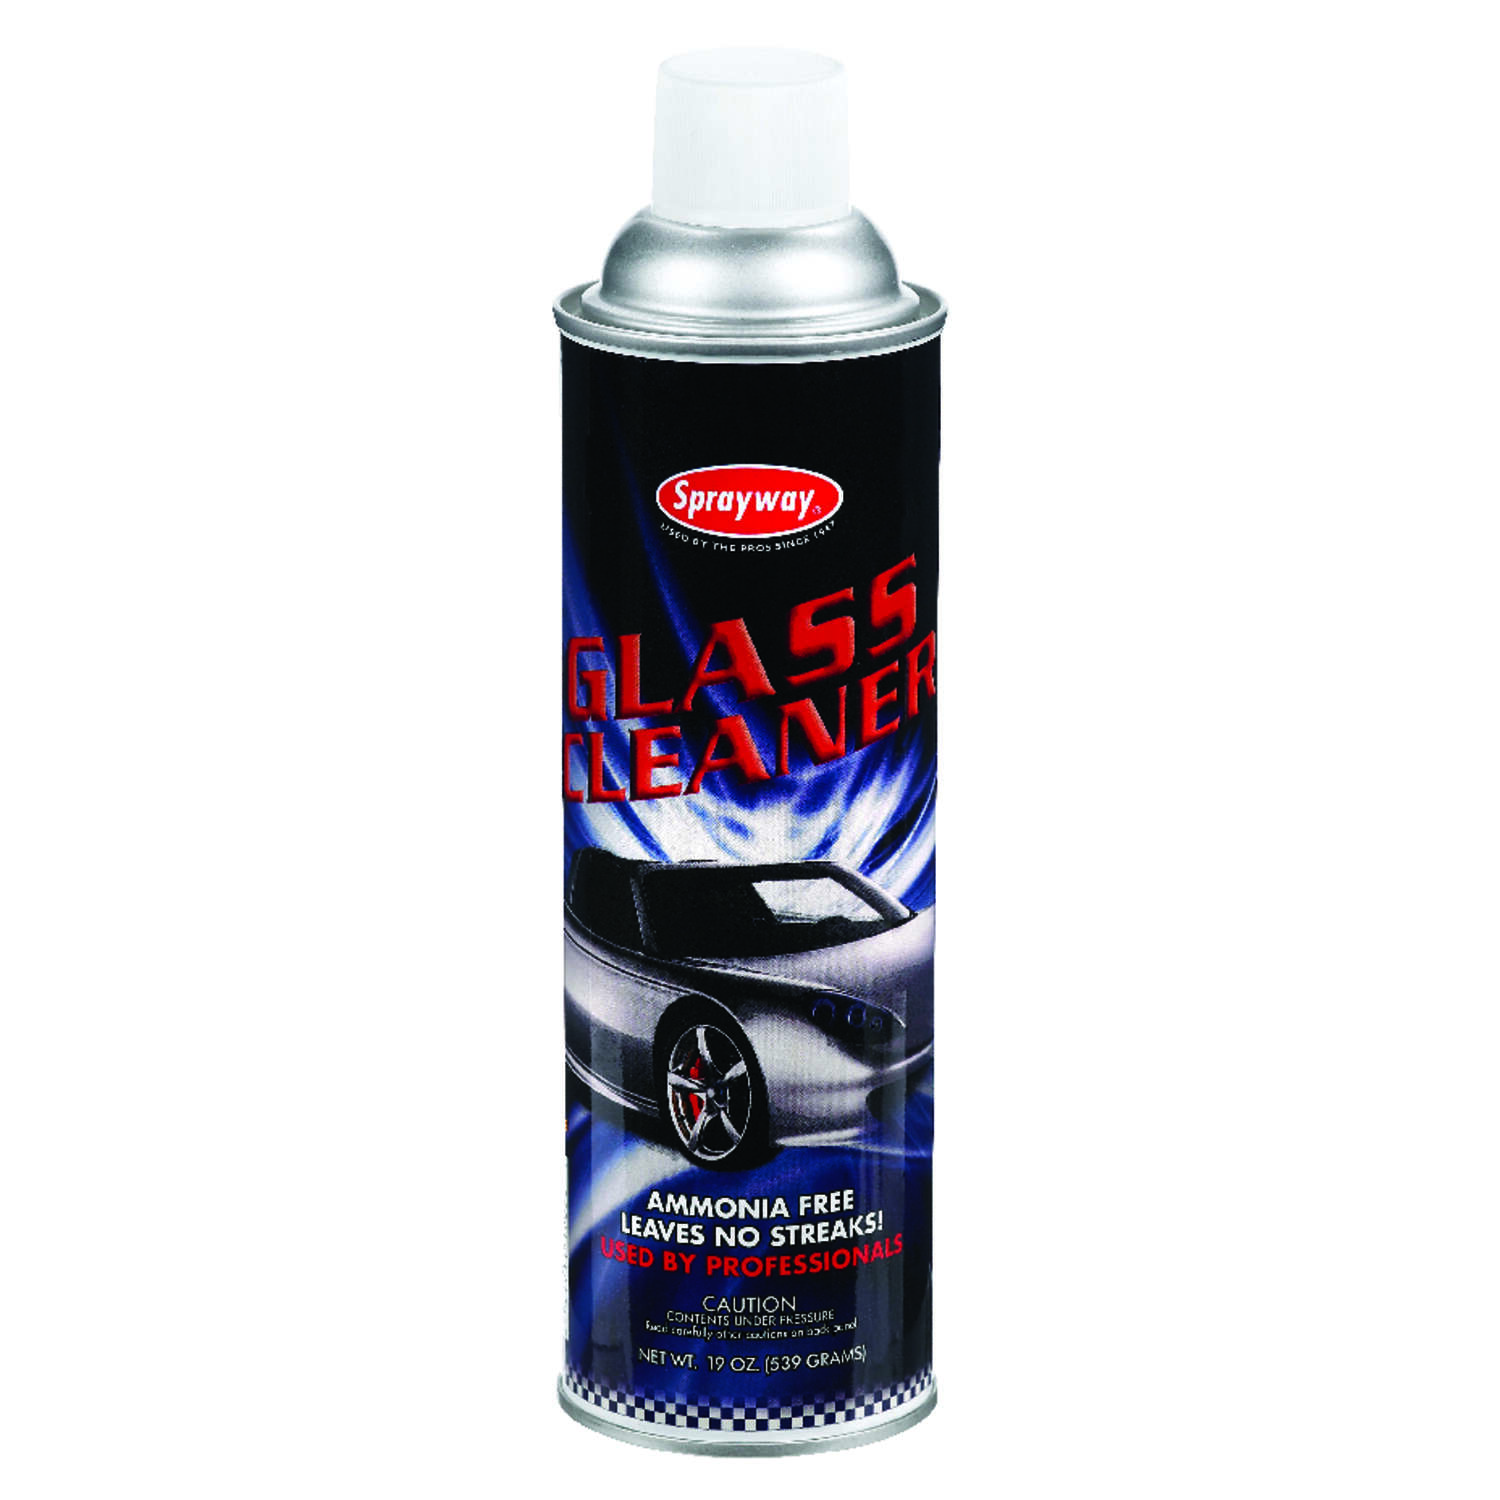 Sprayway Auto Glass Cleaner Foam 19 oz.